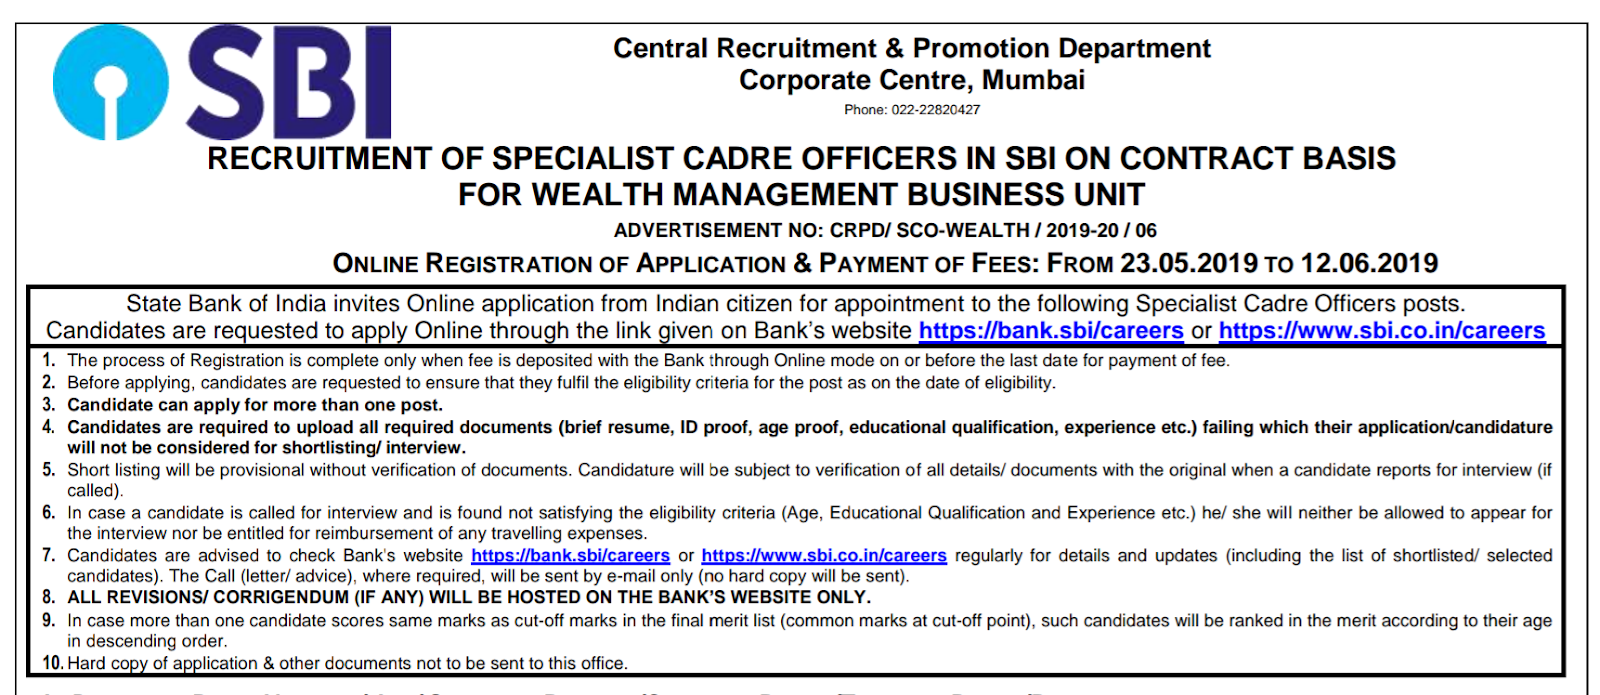 SBI - Relationship Manager Recruitment Notification (नोटिफिकेशन)